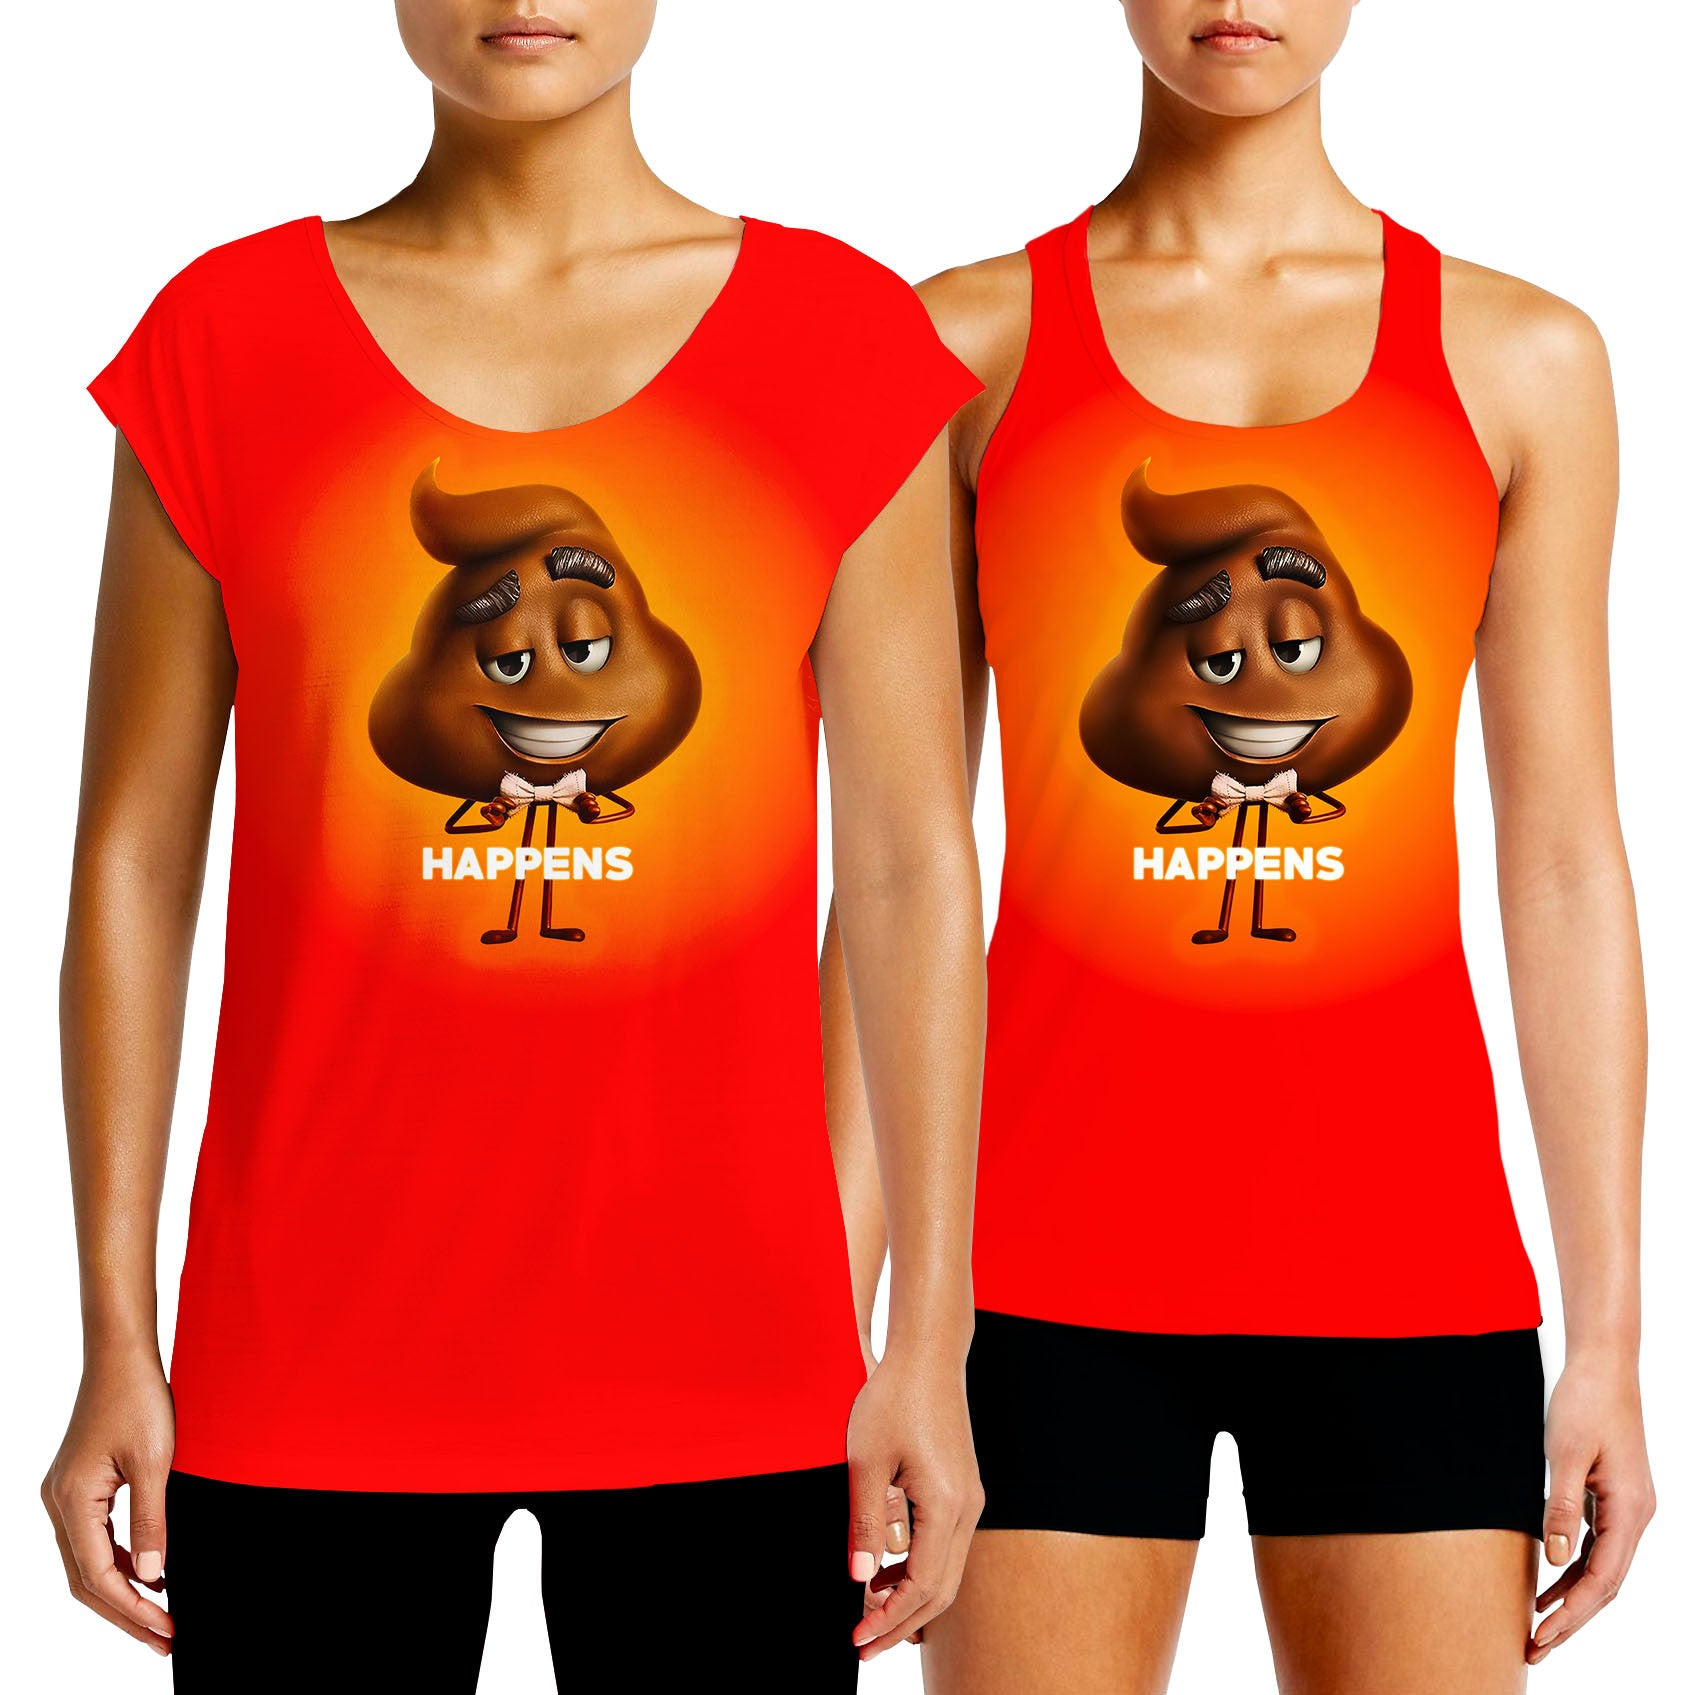 Design t shirts and sell online - Emoji T Shirts India For Sale Online T Shirt Buy Red Funny T Shirt